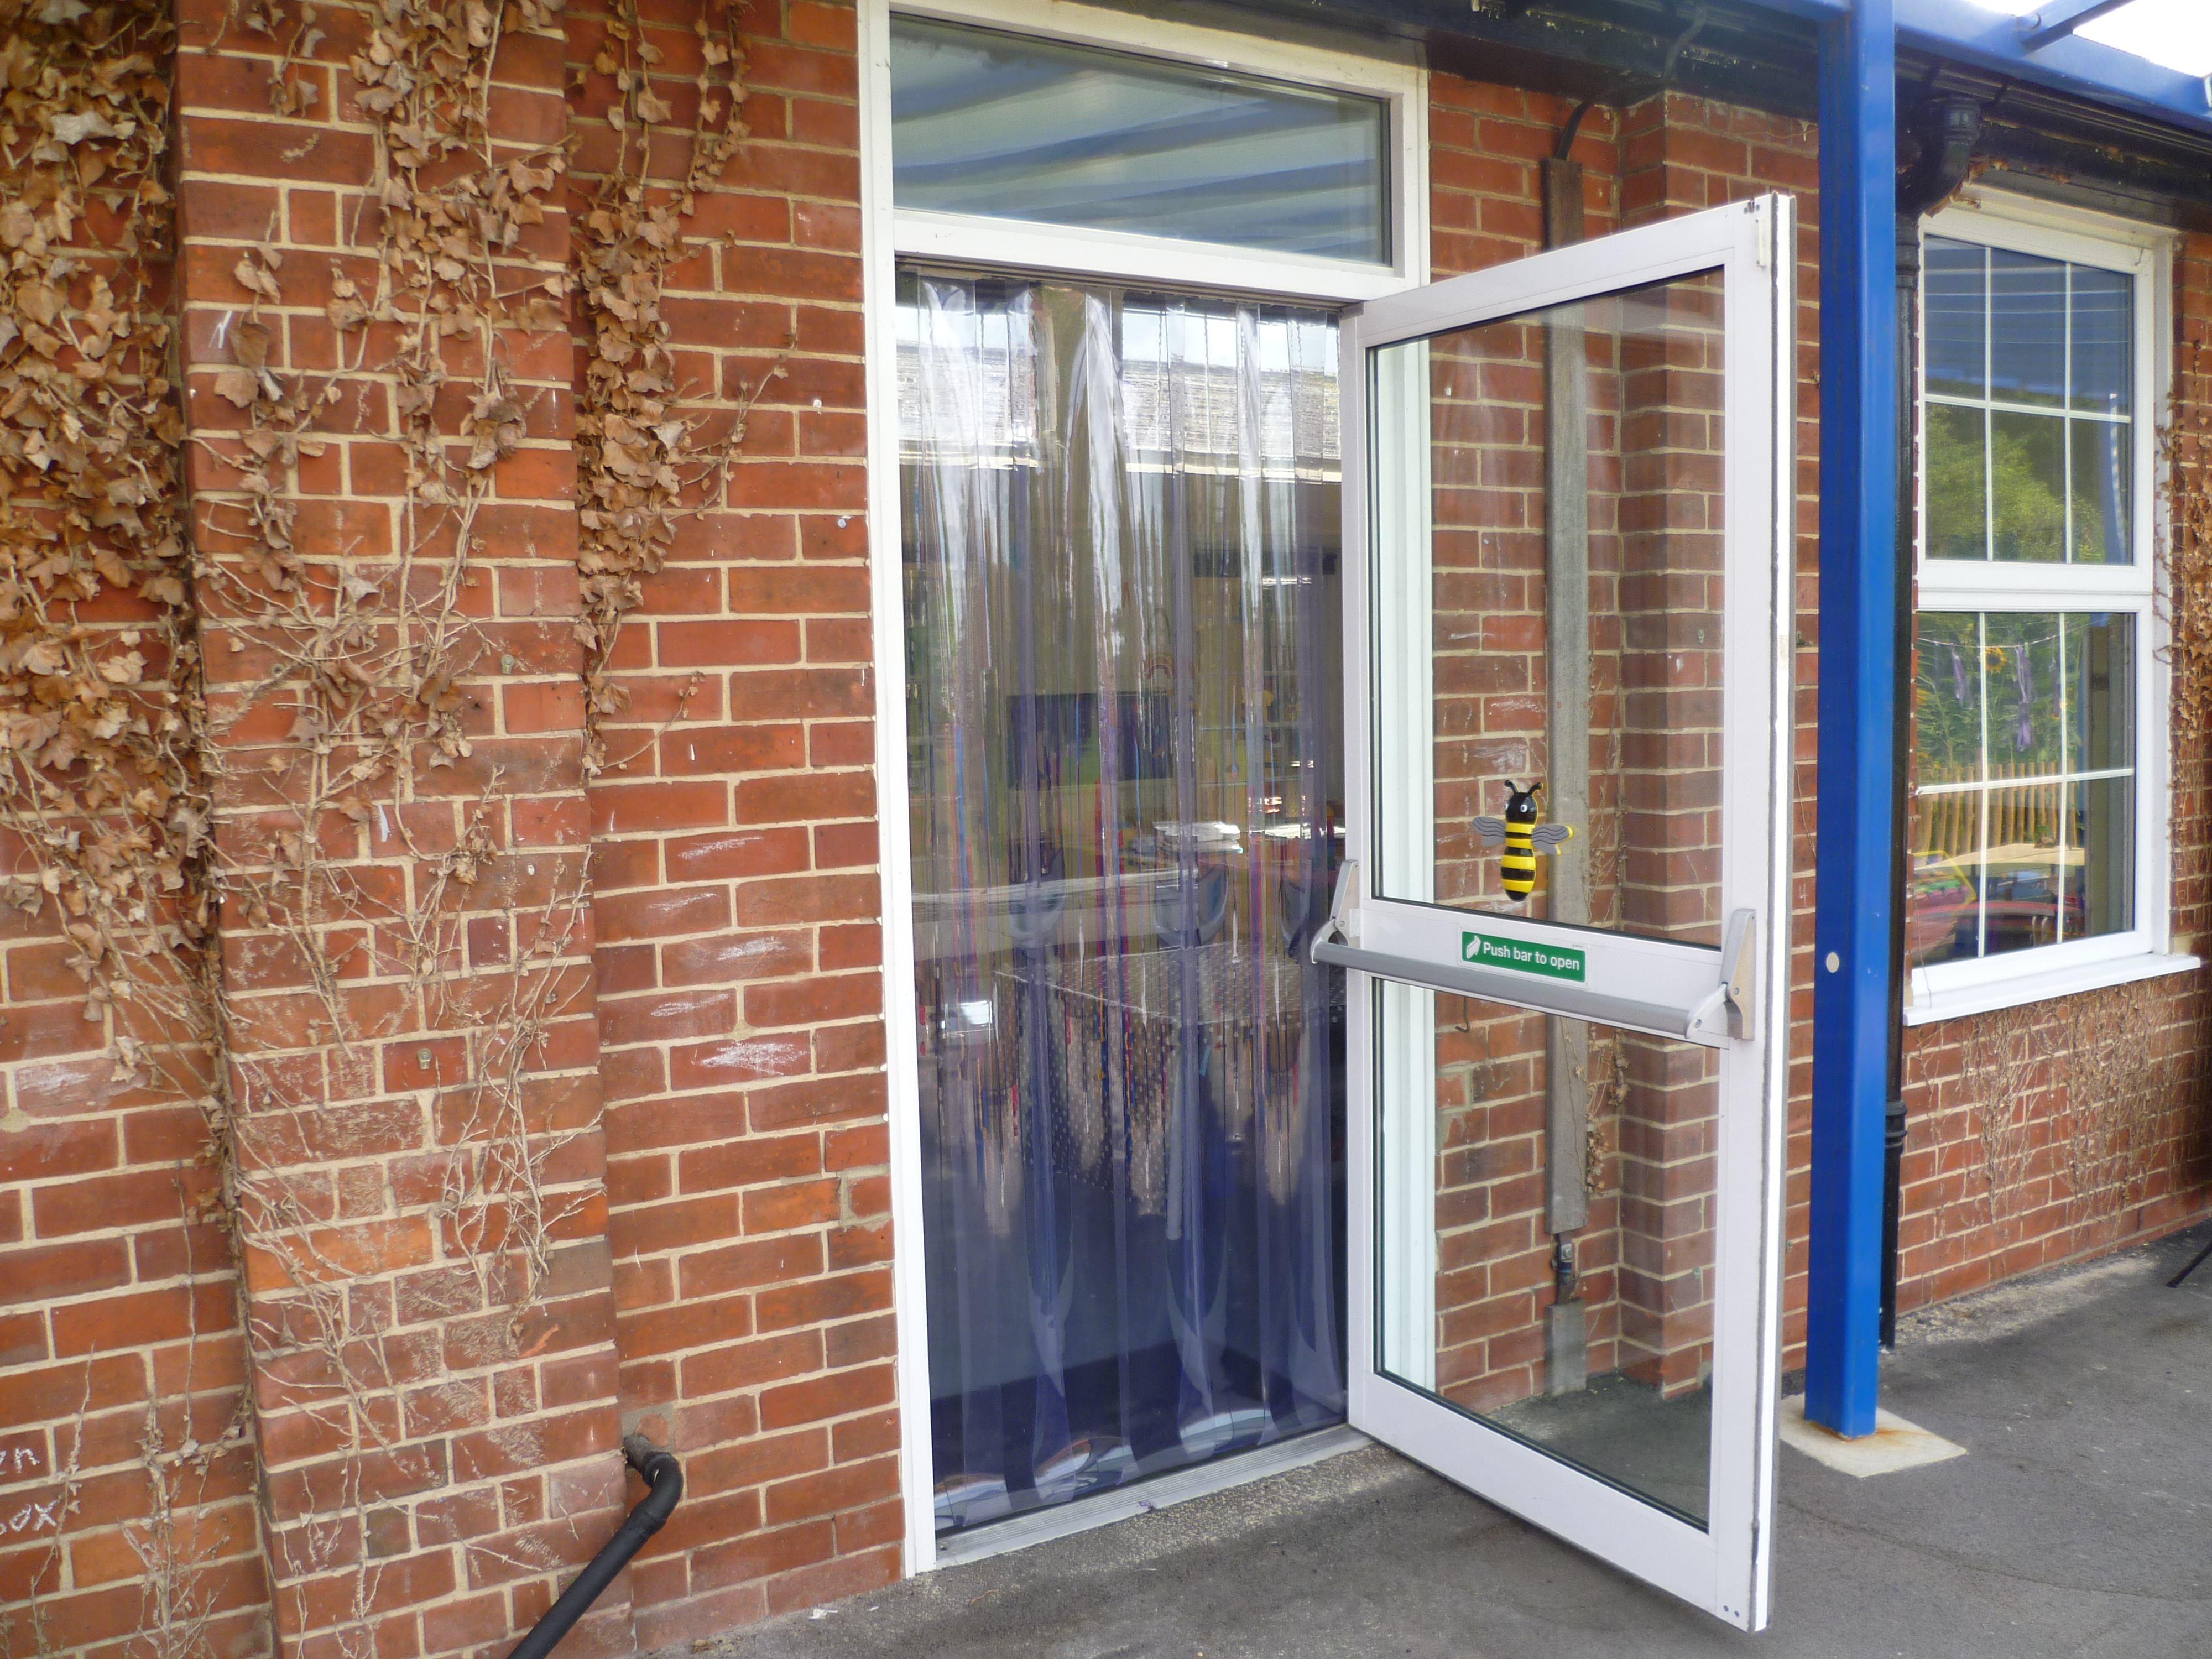 Free Flow Pvc Curtains For Schools And Nurseries